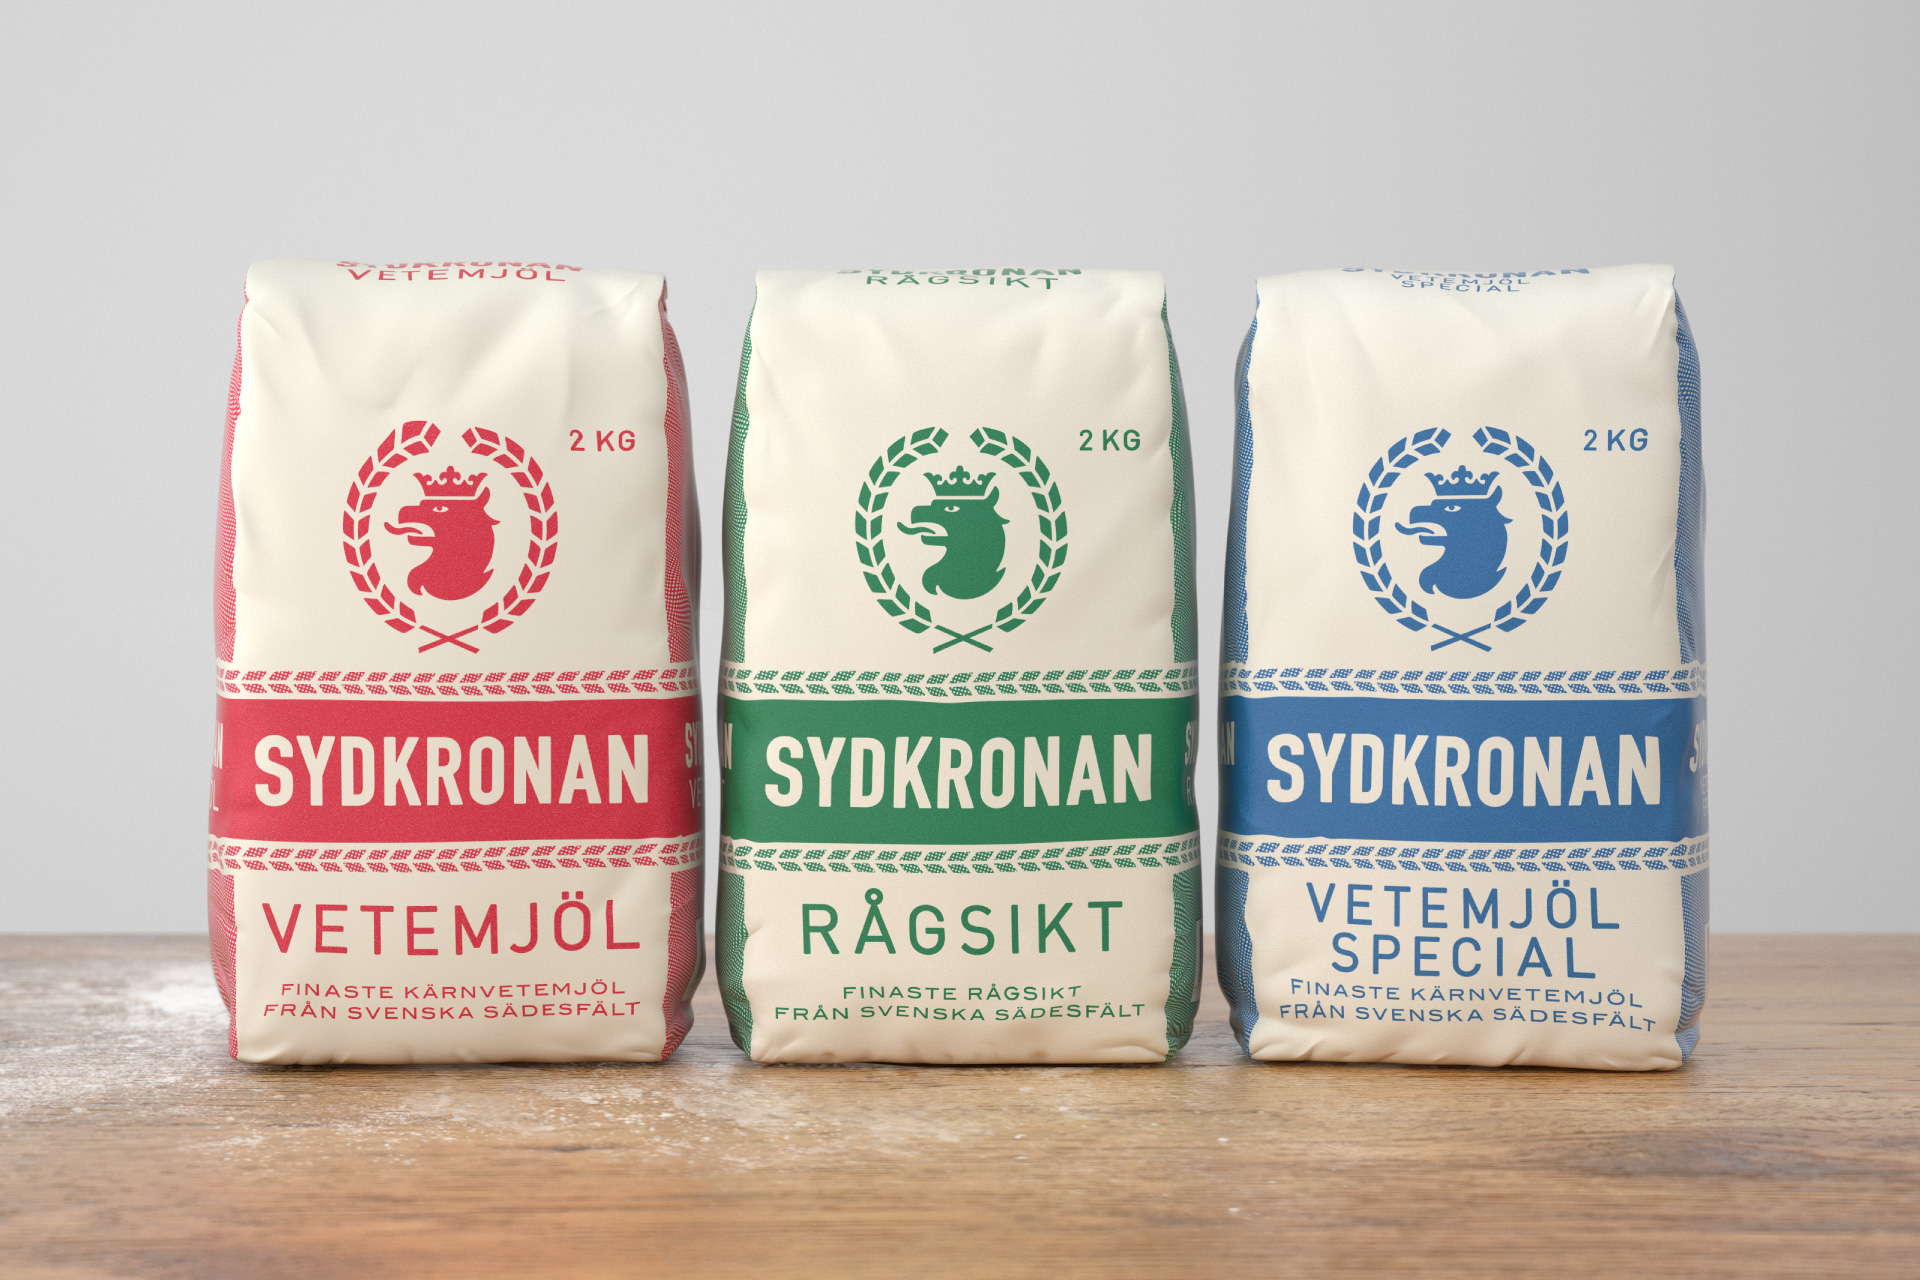 Packaging design for Sydkronan by Amore, at FÖRPACKAD